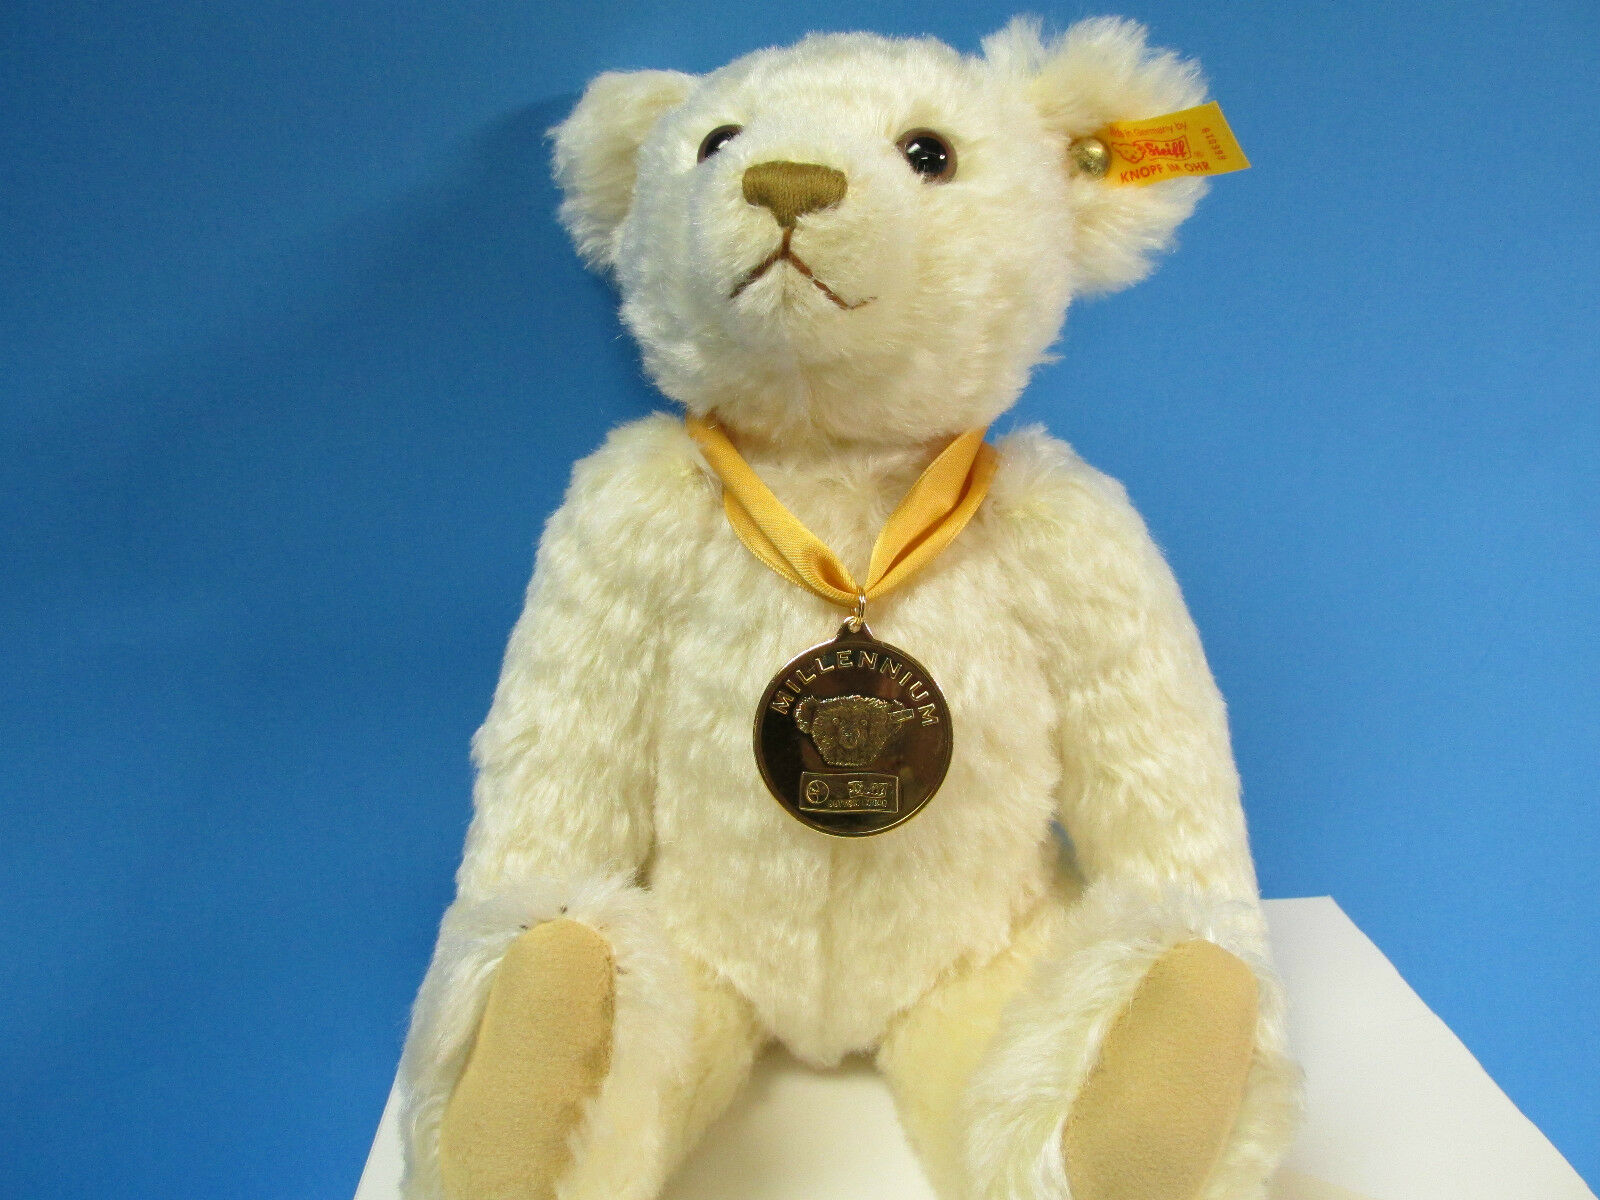 * NEW DANBURY MINT MILLENNIUM THE BEAR OF THE YEAR COLLECTION BY Steiff .. DL-21